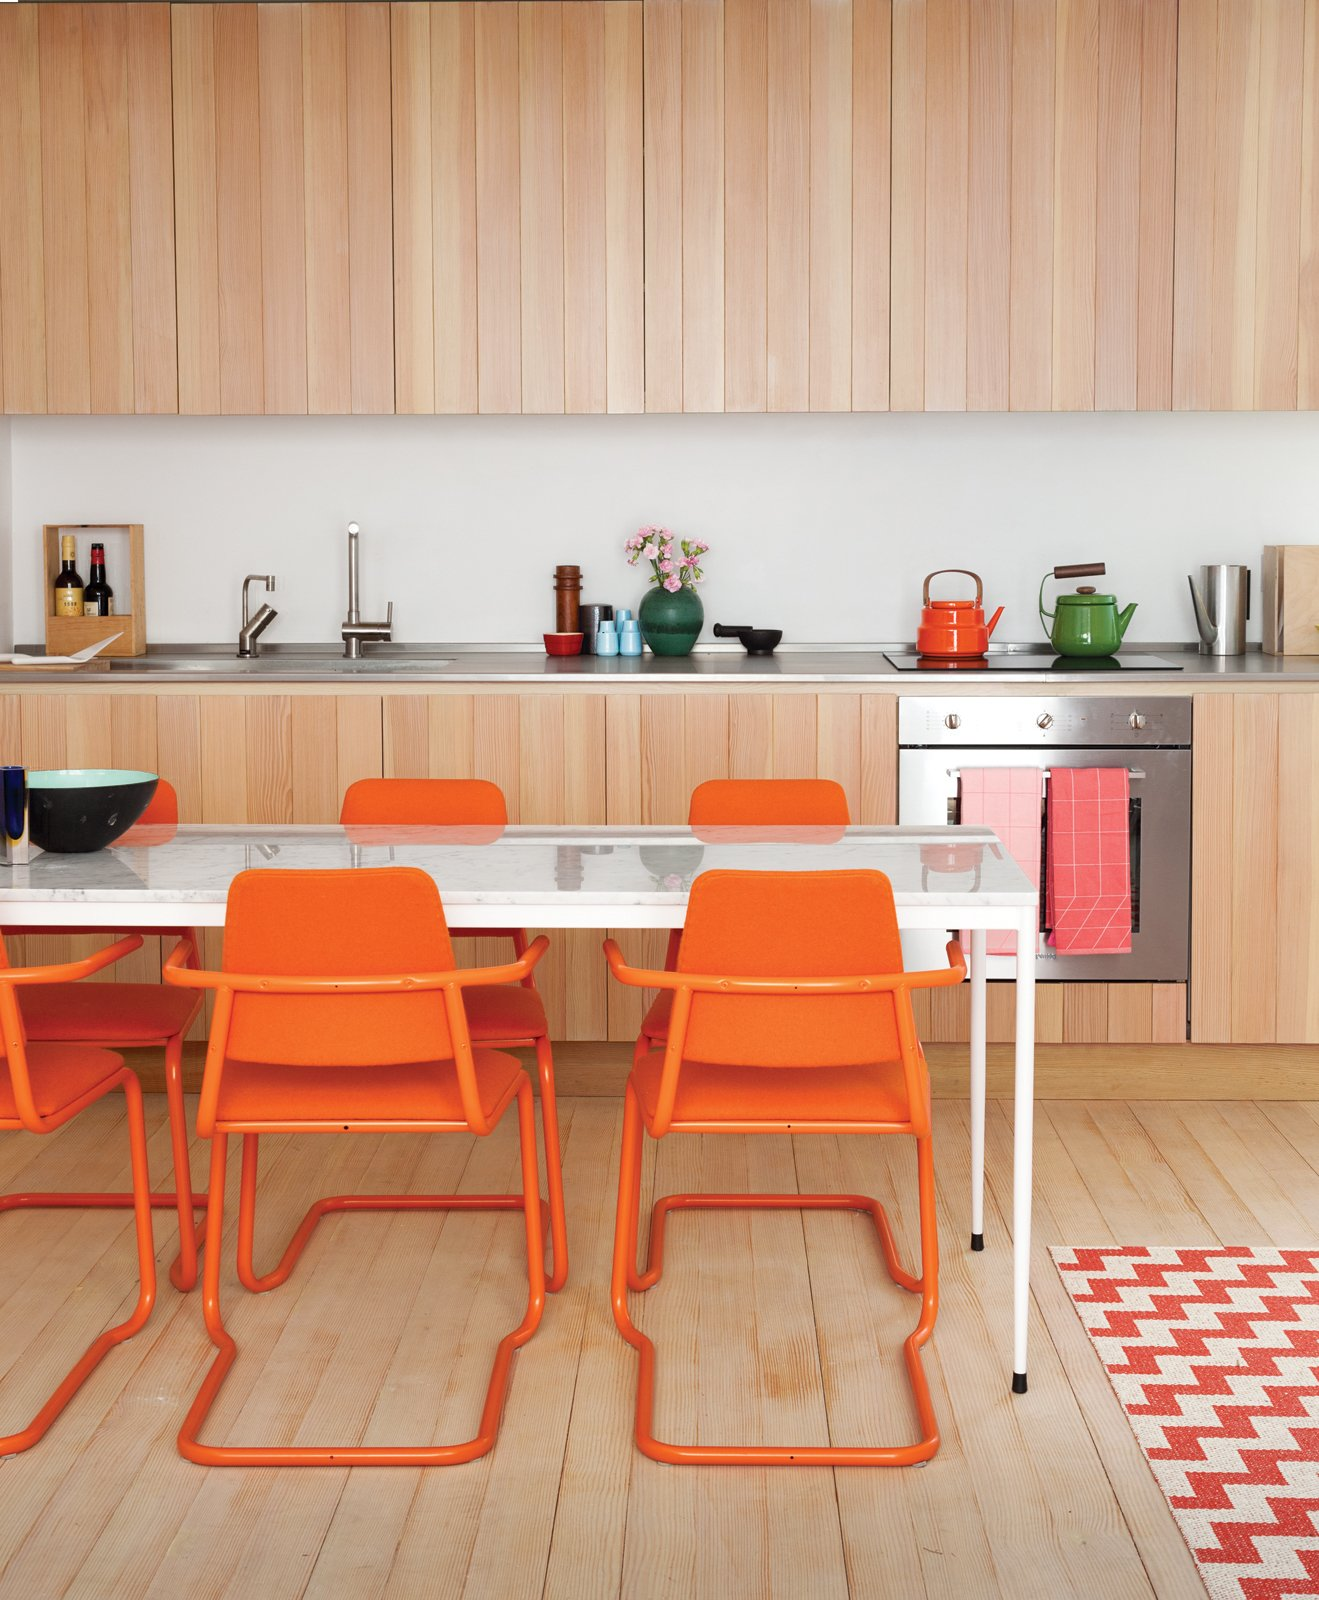 In this custom-built London guesthouse kitchen designed by Studiomama, lustrous vertically clad cabinetry achieves additional depth with the addition of the chairs, which were picked up for $15 each at a local market and powder coated in bright orange. Tagged: Kitchen, Metal Counter, Wood Cabinet, Light Hardwood Floor, Wall Oven, and Cooktops.  Photo 1 of 7 in How-To Design with Patterned Rugs from A Colorful, Custom-Built Guesthouse in London